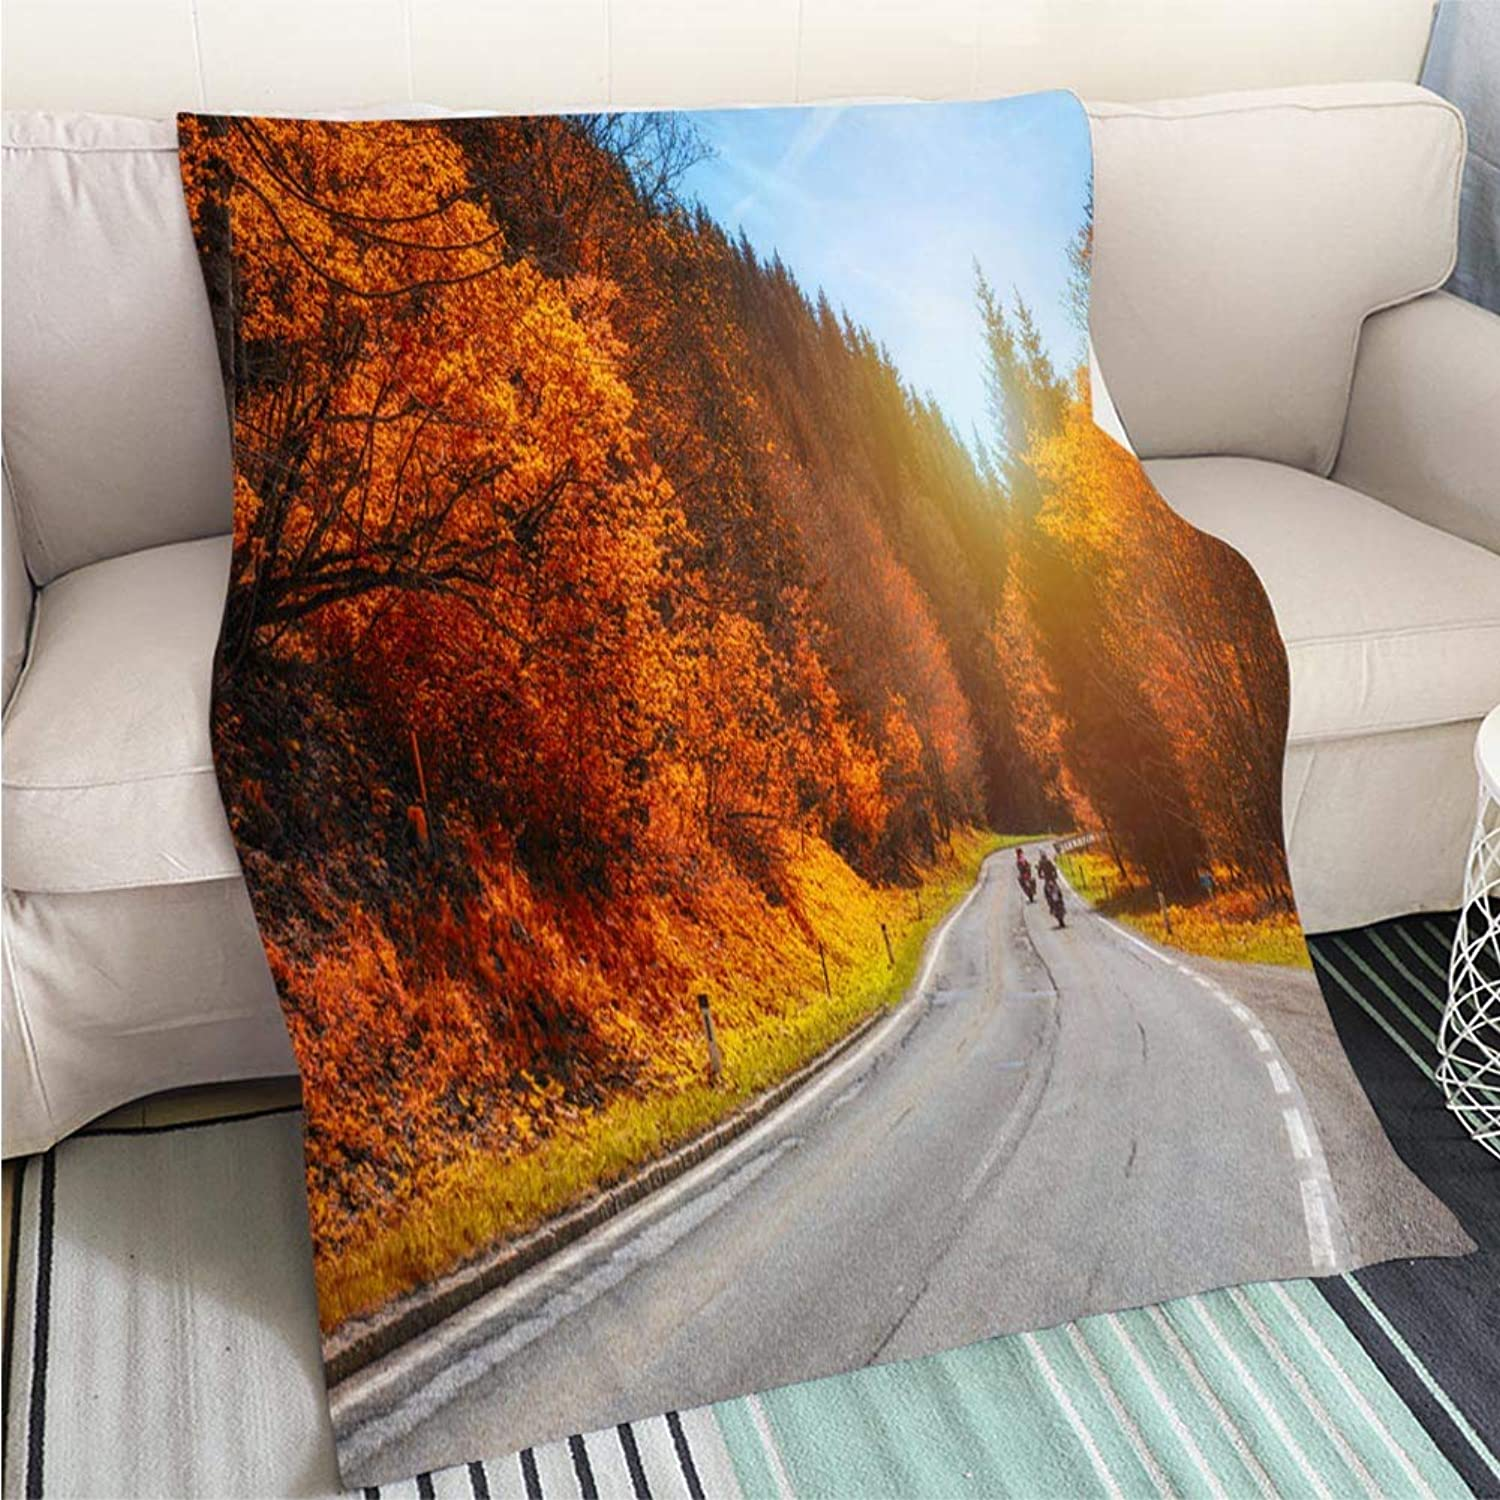 BEICICI Art Design Photos Cool Quilt Bikers on Mountainous Highway Biker on The Road in Sunset Light in Autumn Riding on Curve Road Pass Across Alpine Art Blanket as Bedspread gold White Bed or Couch